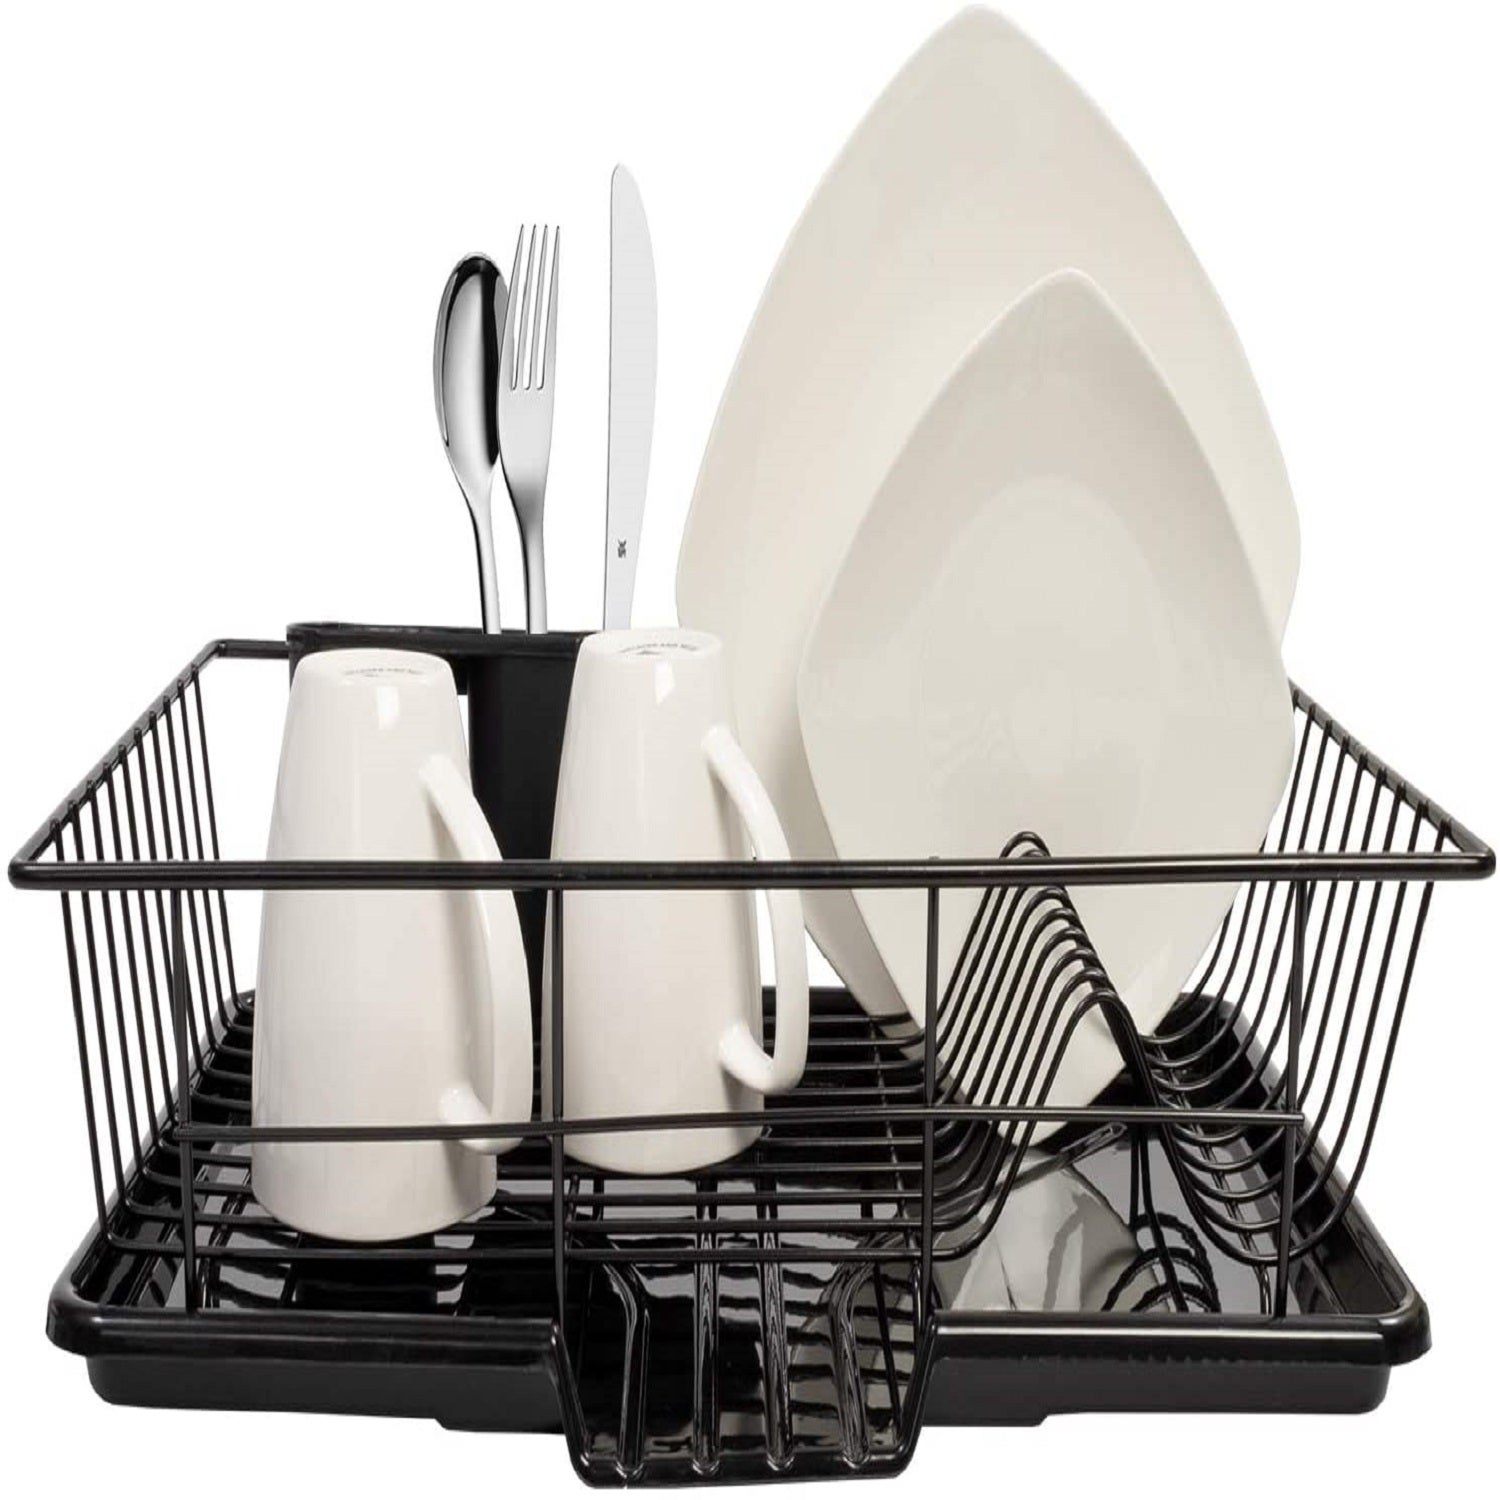 5 best dish drying rack options for the